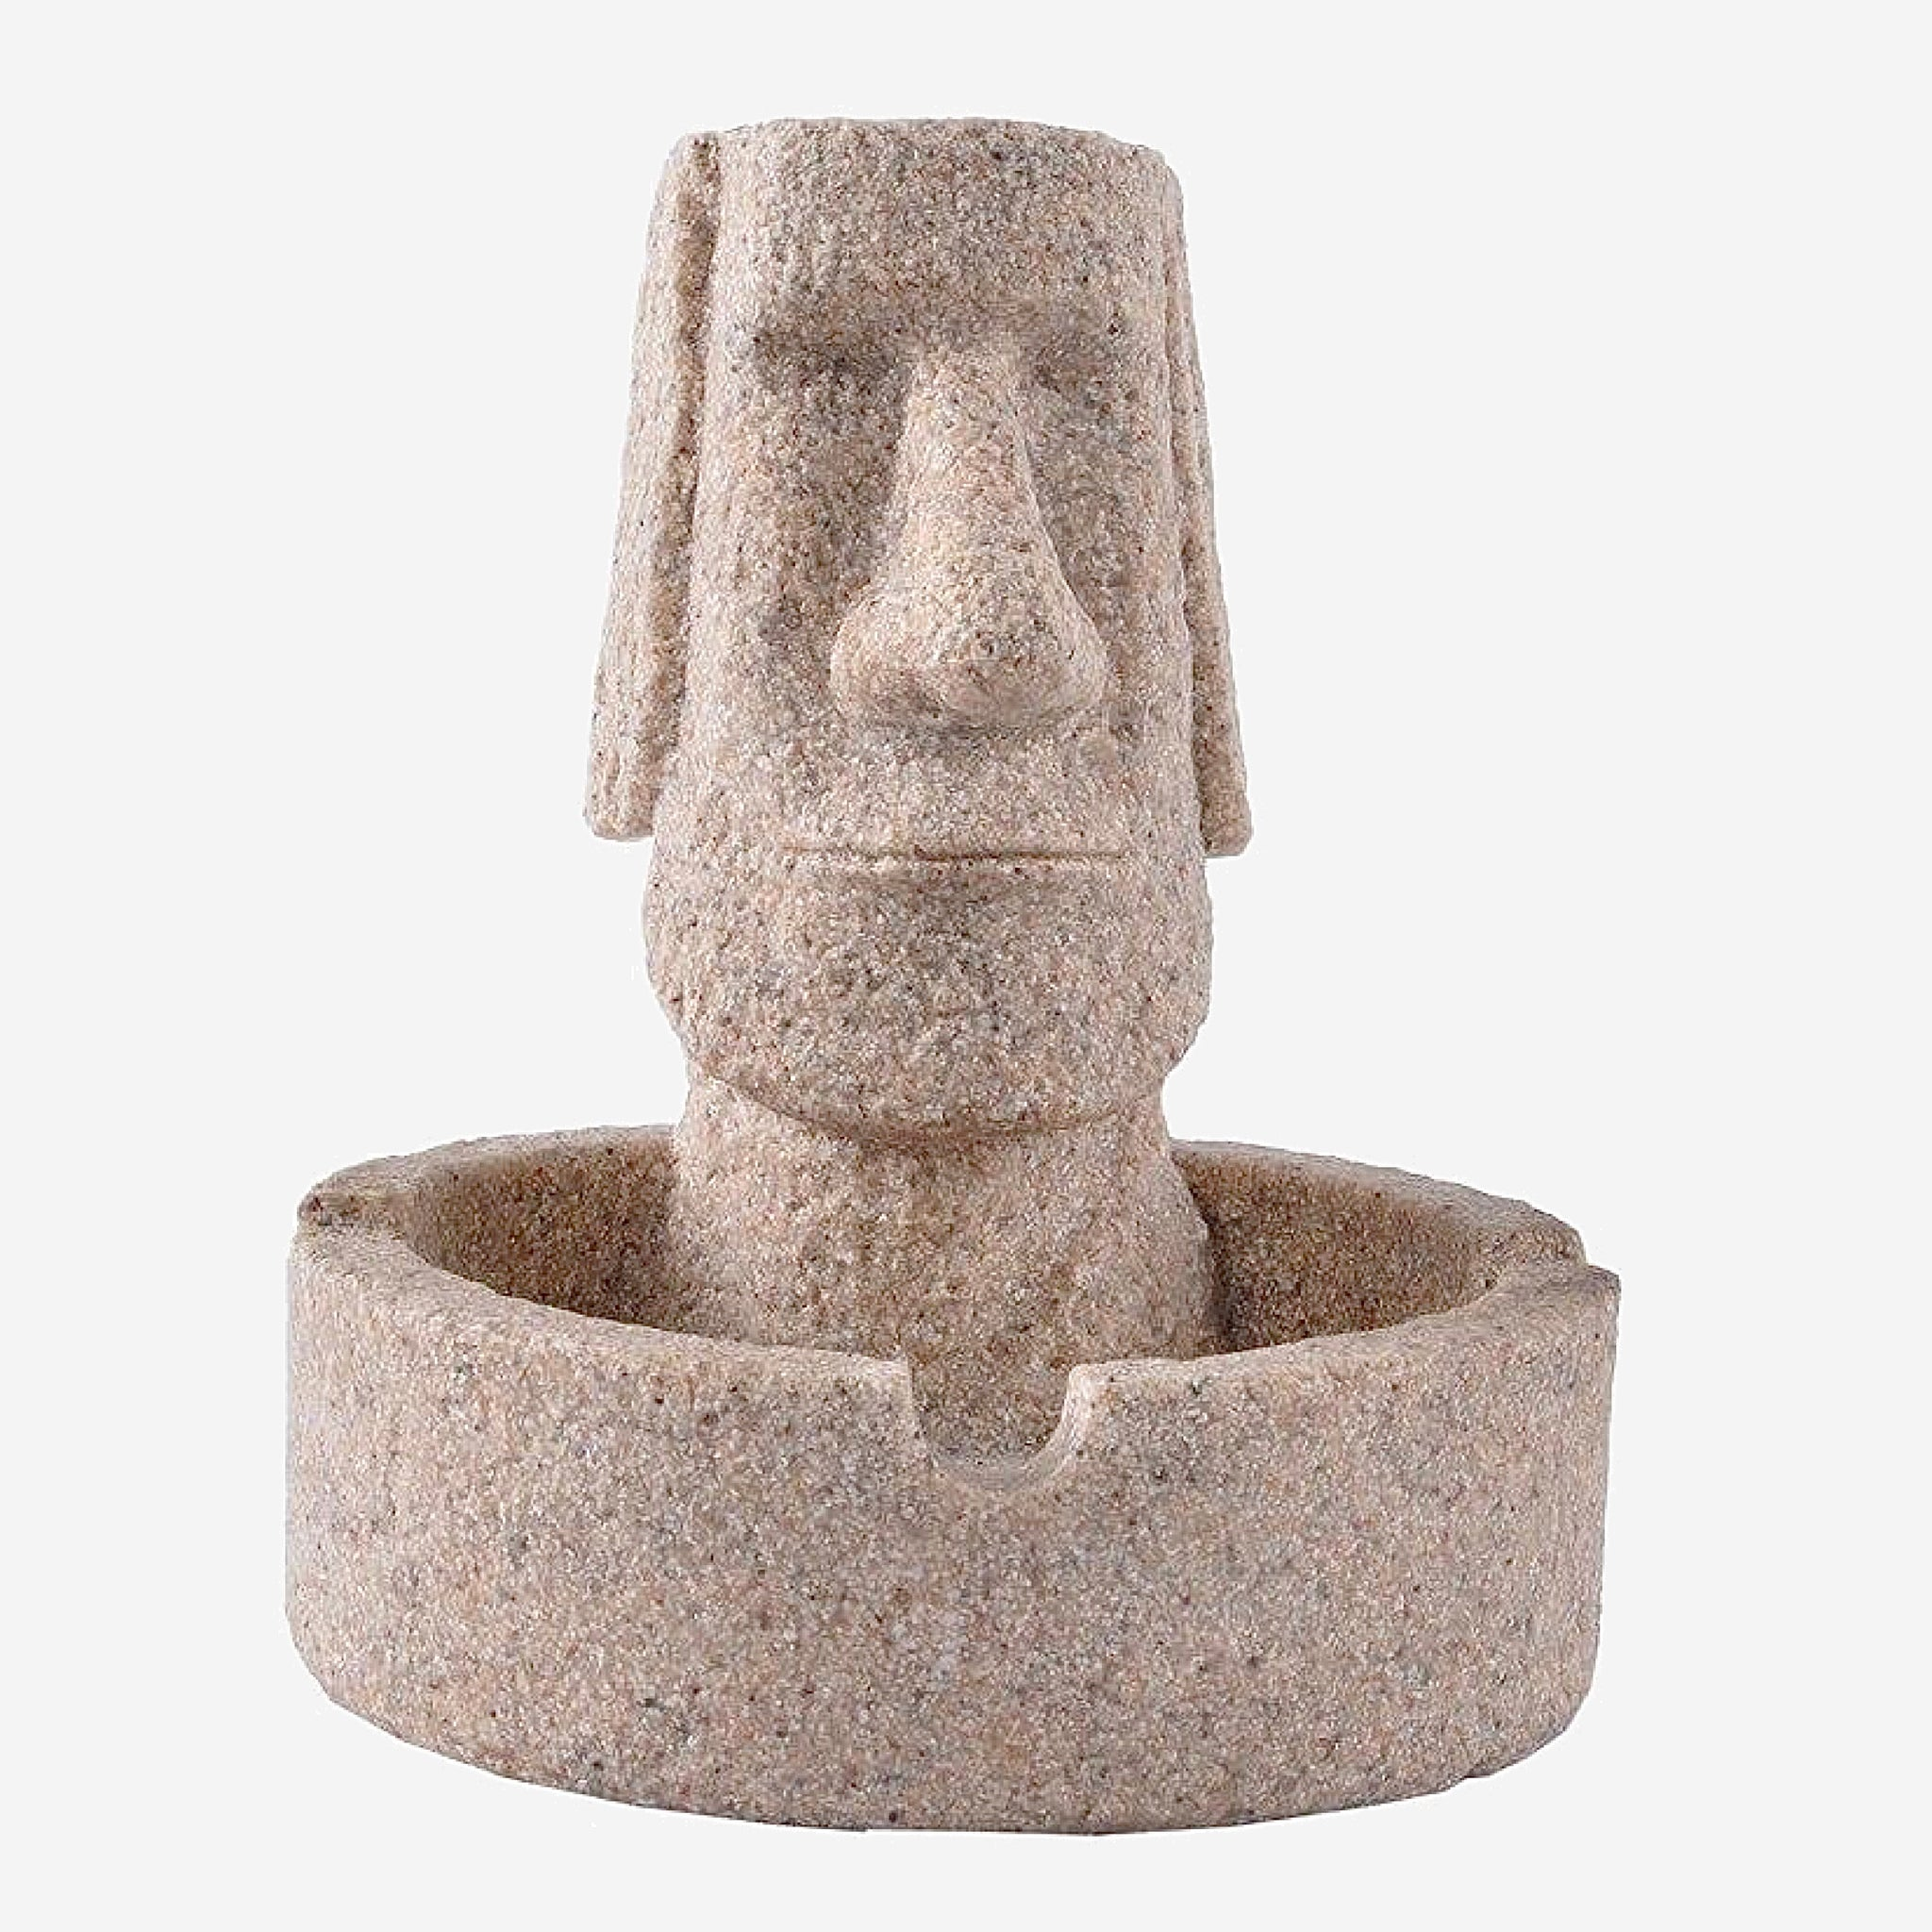 Easter Island Sandstone Ashtray Decoration for table Gift Room Creative Crafts Figurines Trend